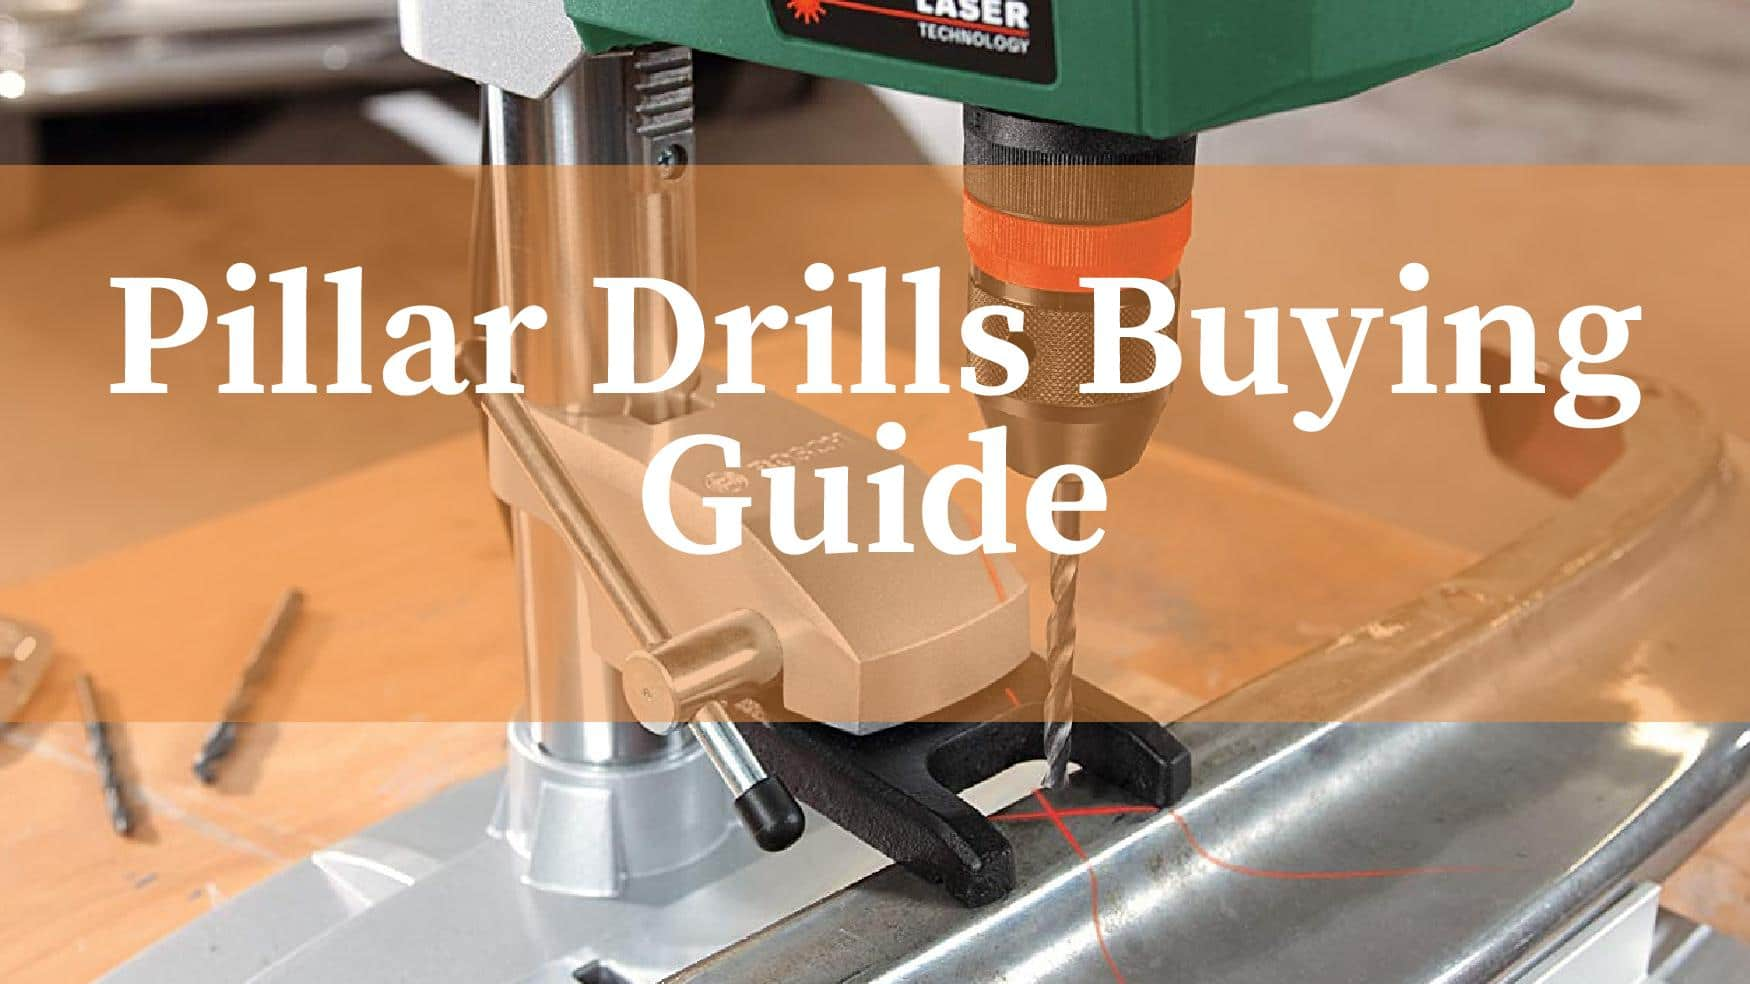 Best Pillar Drills Reviews UK